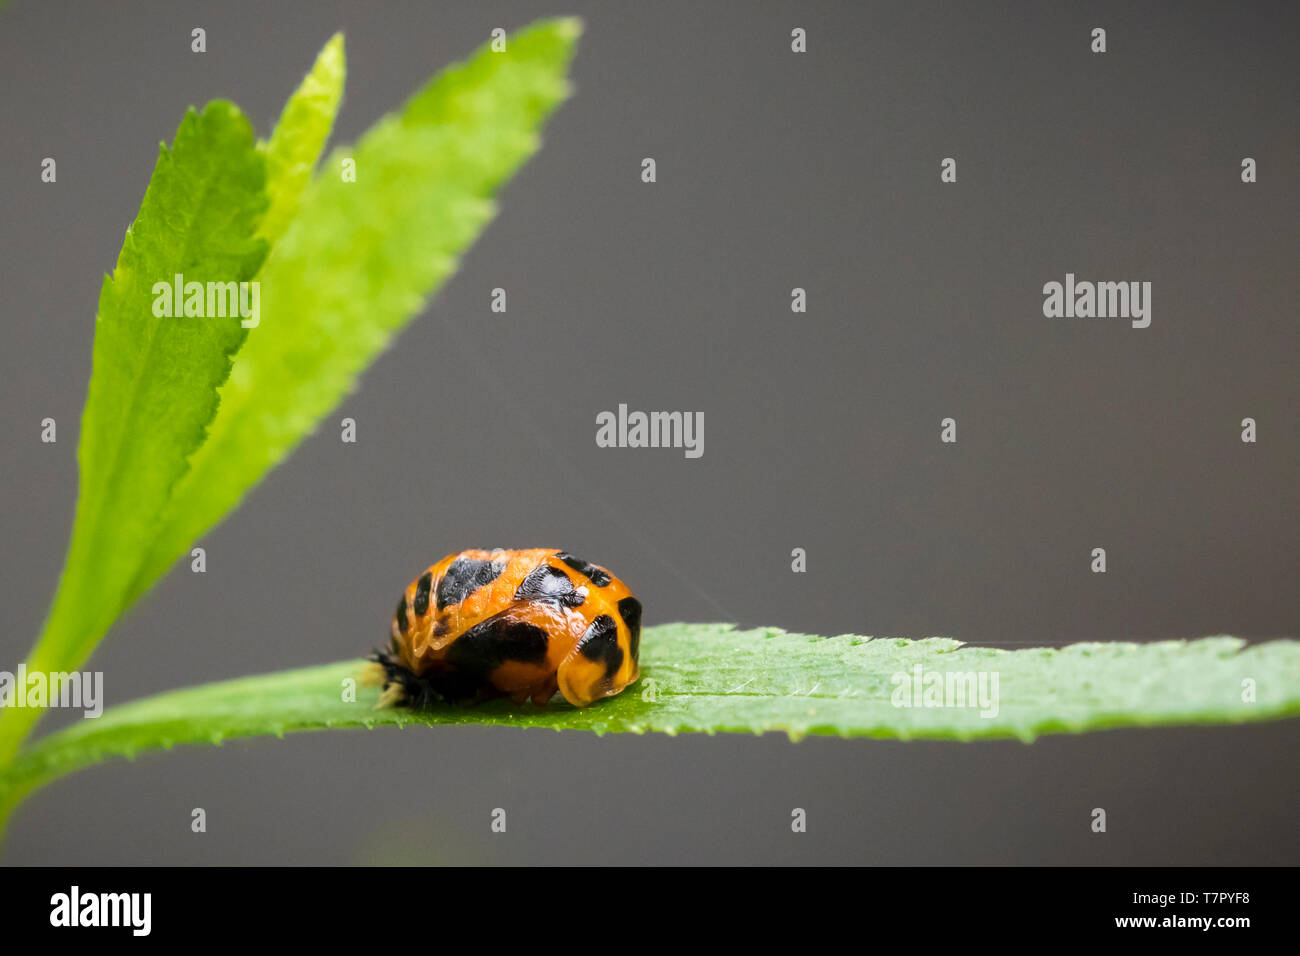 Ladybug insect larva or pupacloseup. Pupal stage on green vegetation closeup. - Stock Image